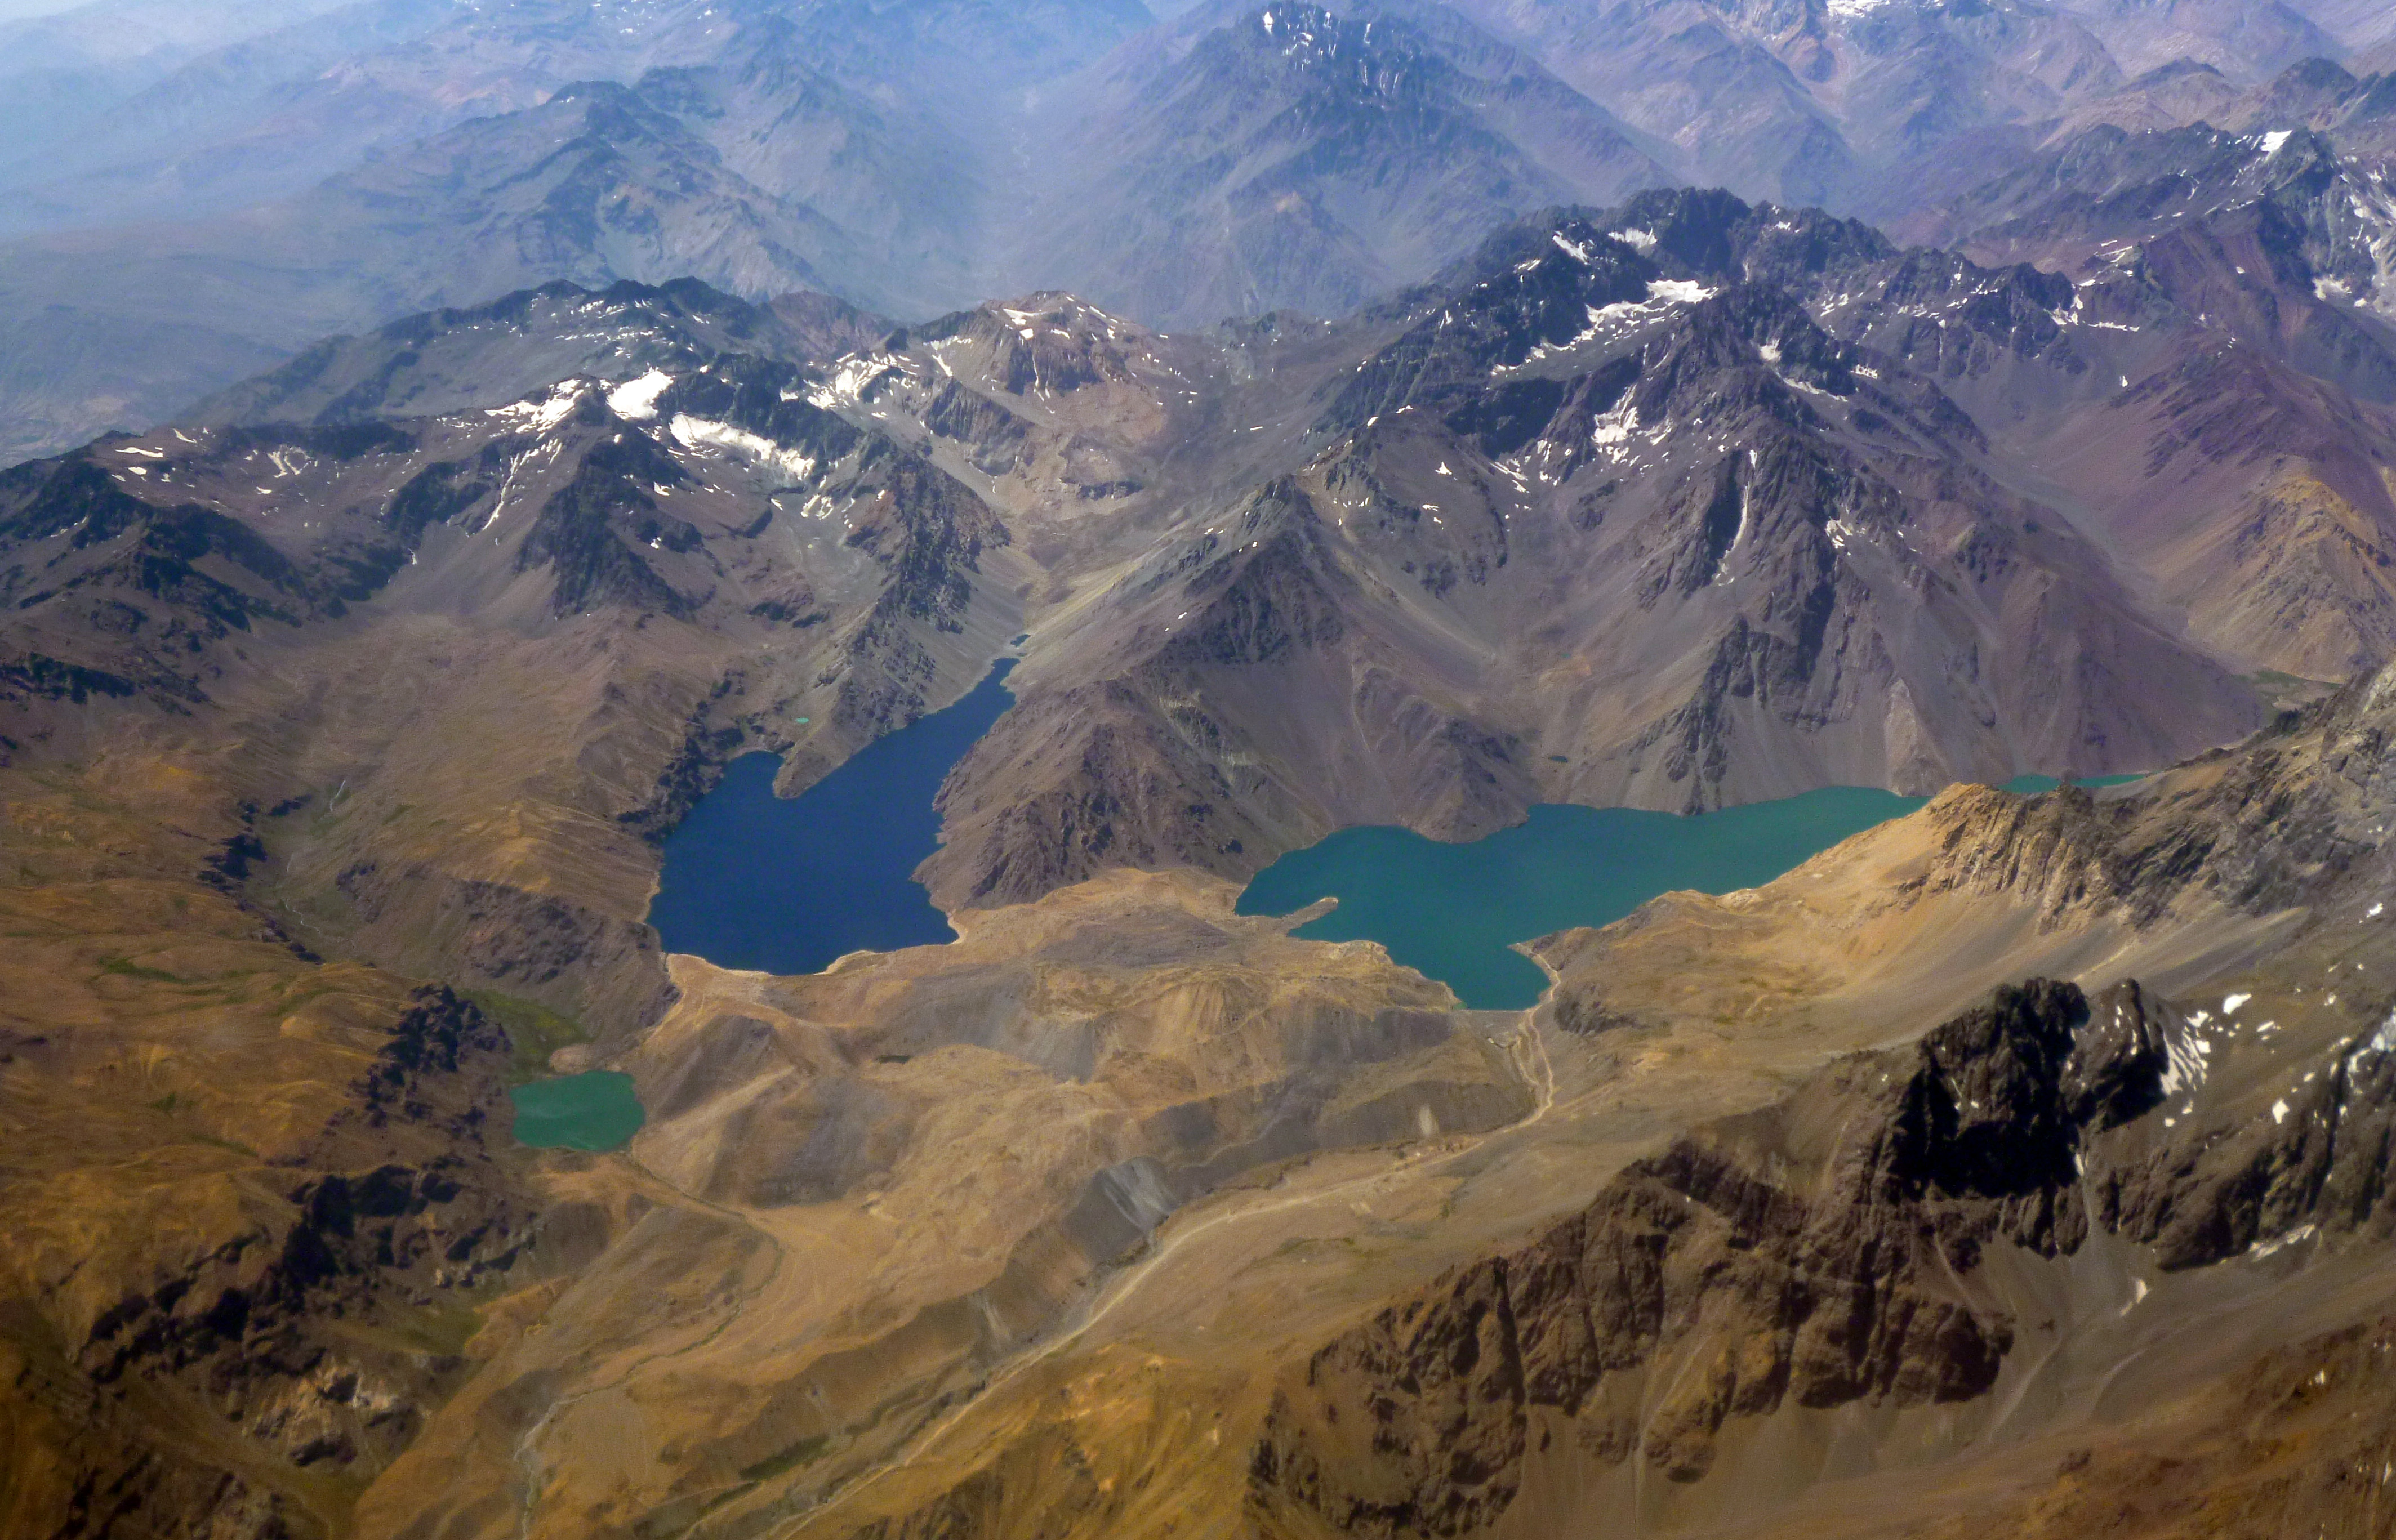 Embalse del yeso fotos 18